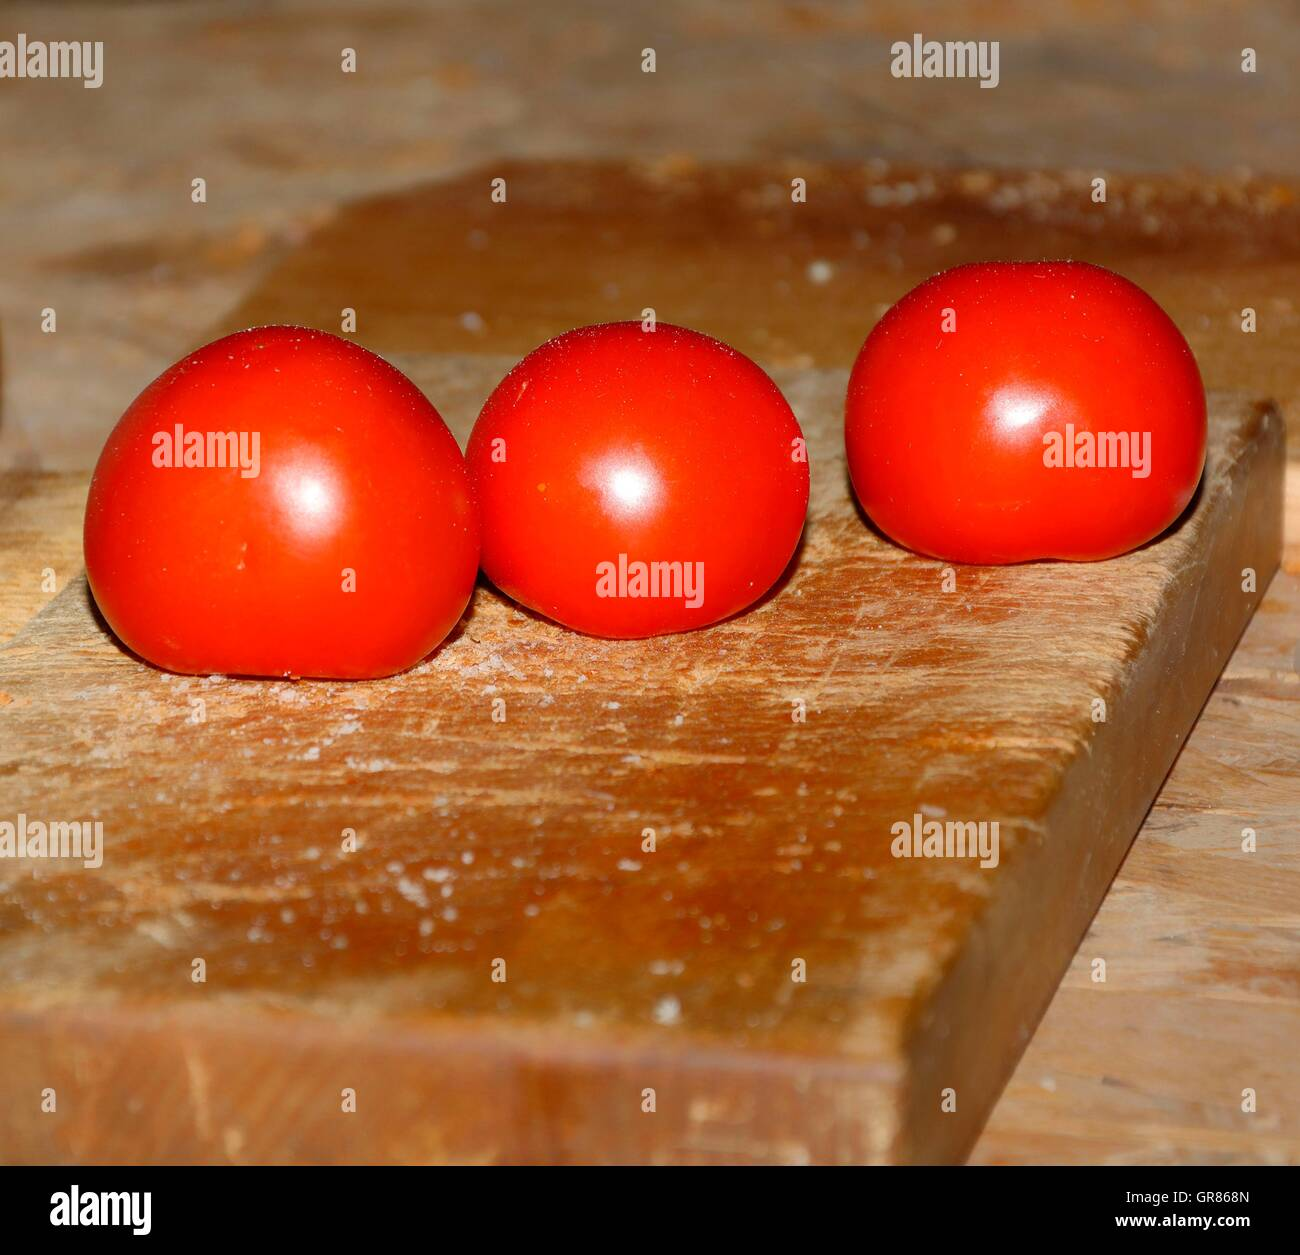 Three Tomatoes, Solanum Lycopersicum, On A Cutting Board With Salzbroeseln - Stock Image